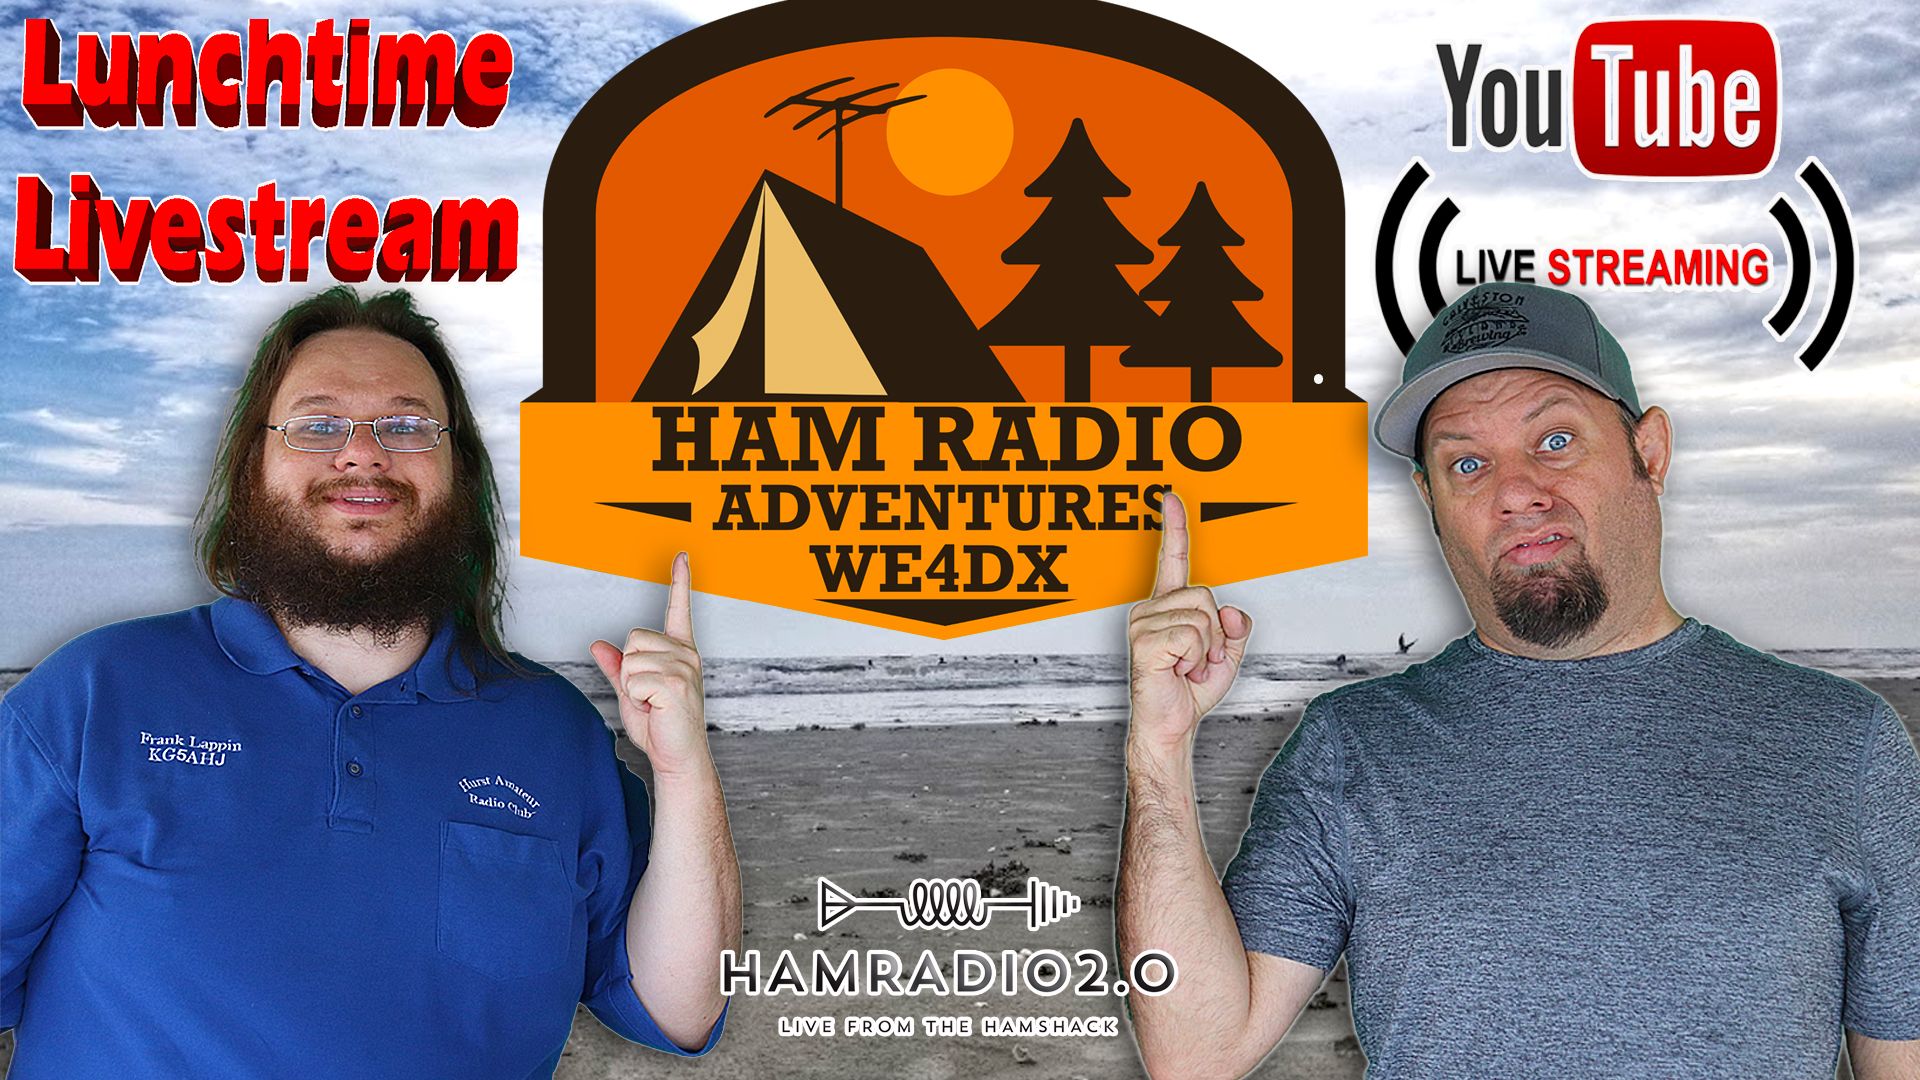 Episode 586: Lunchtime Livestream – Planning POTA at OBX with Ham Radio Adverntures Group!